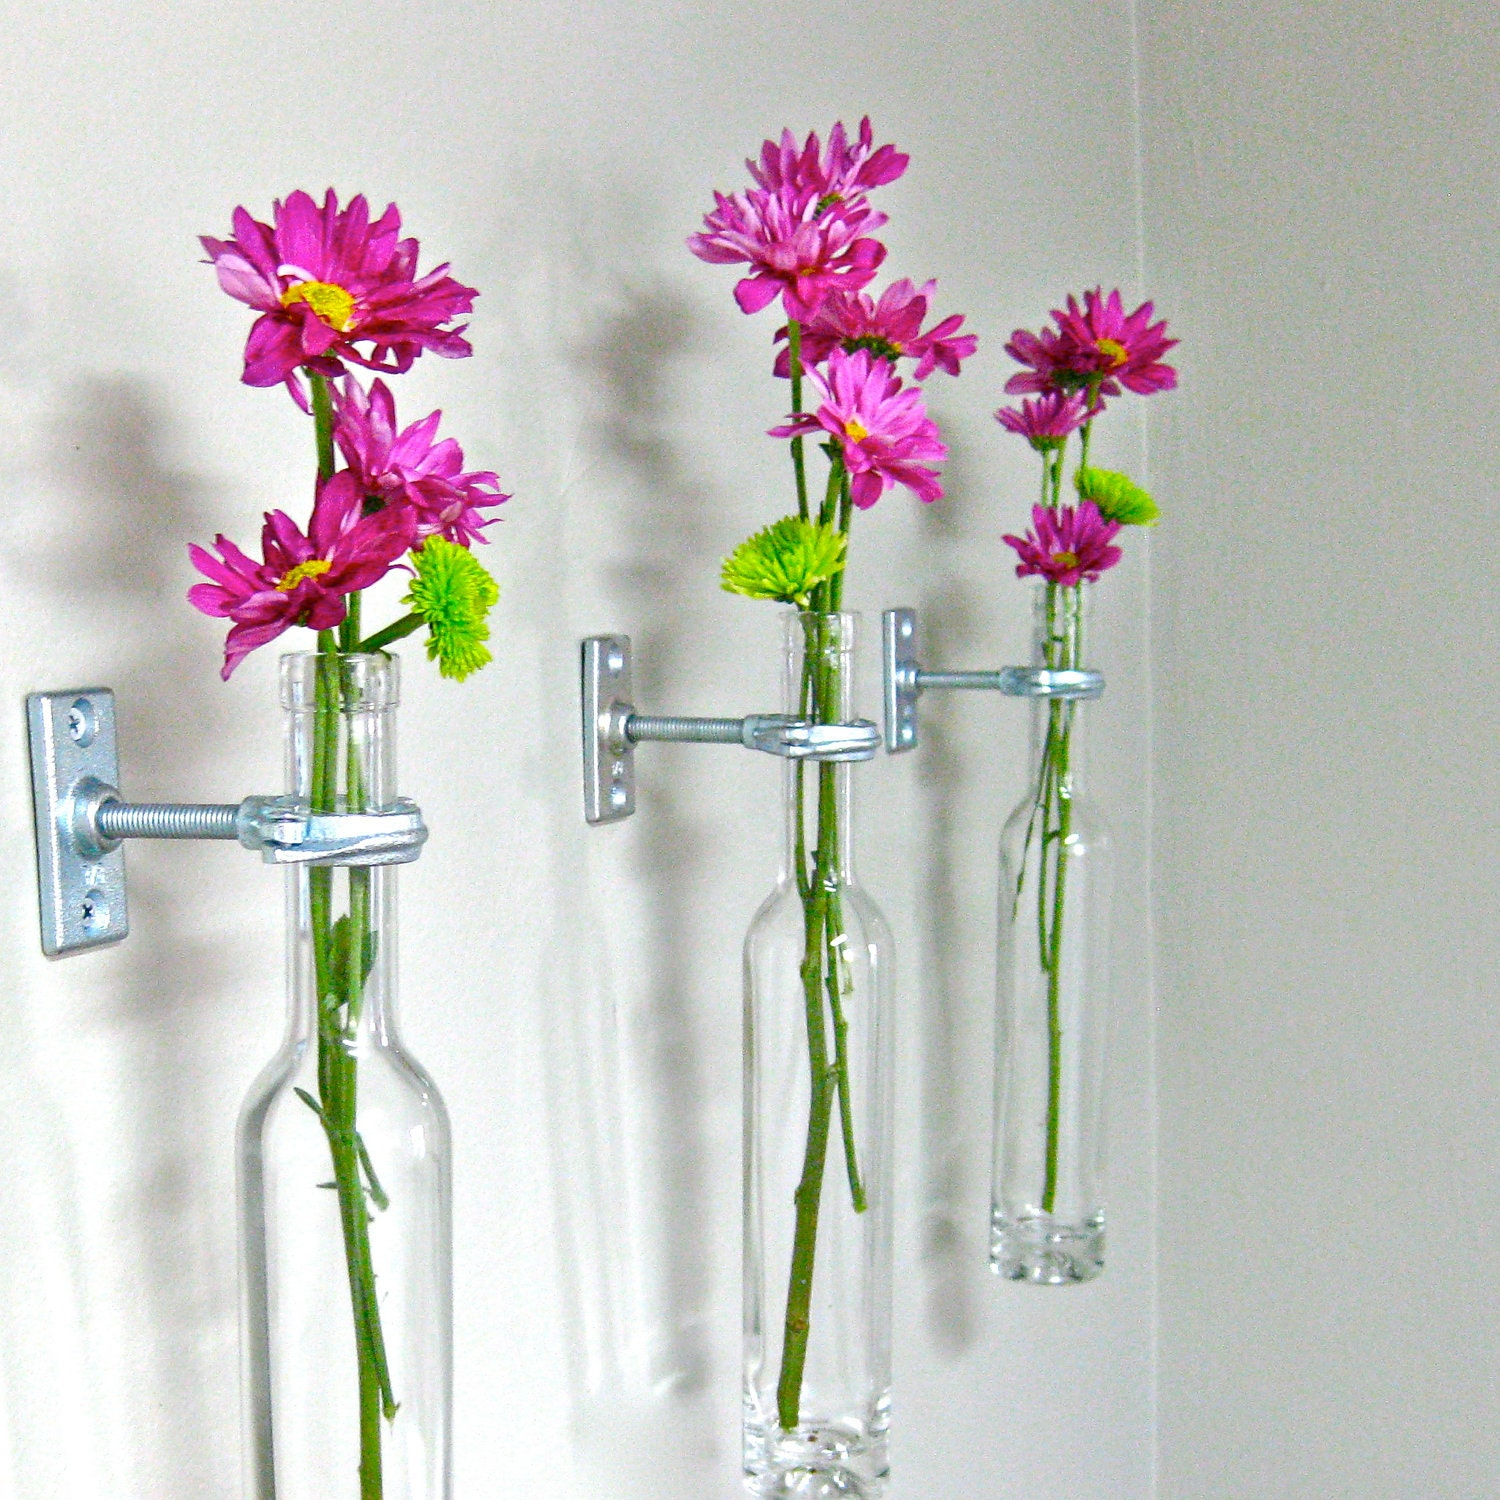 4 Wine Bottle Wall Flower Vases - Wall Sconce - Wall Decor